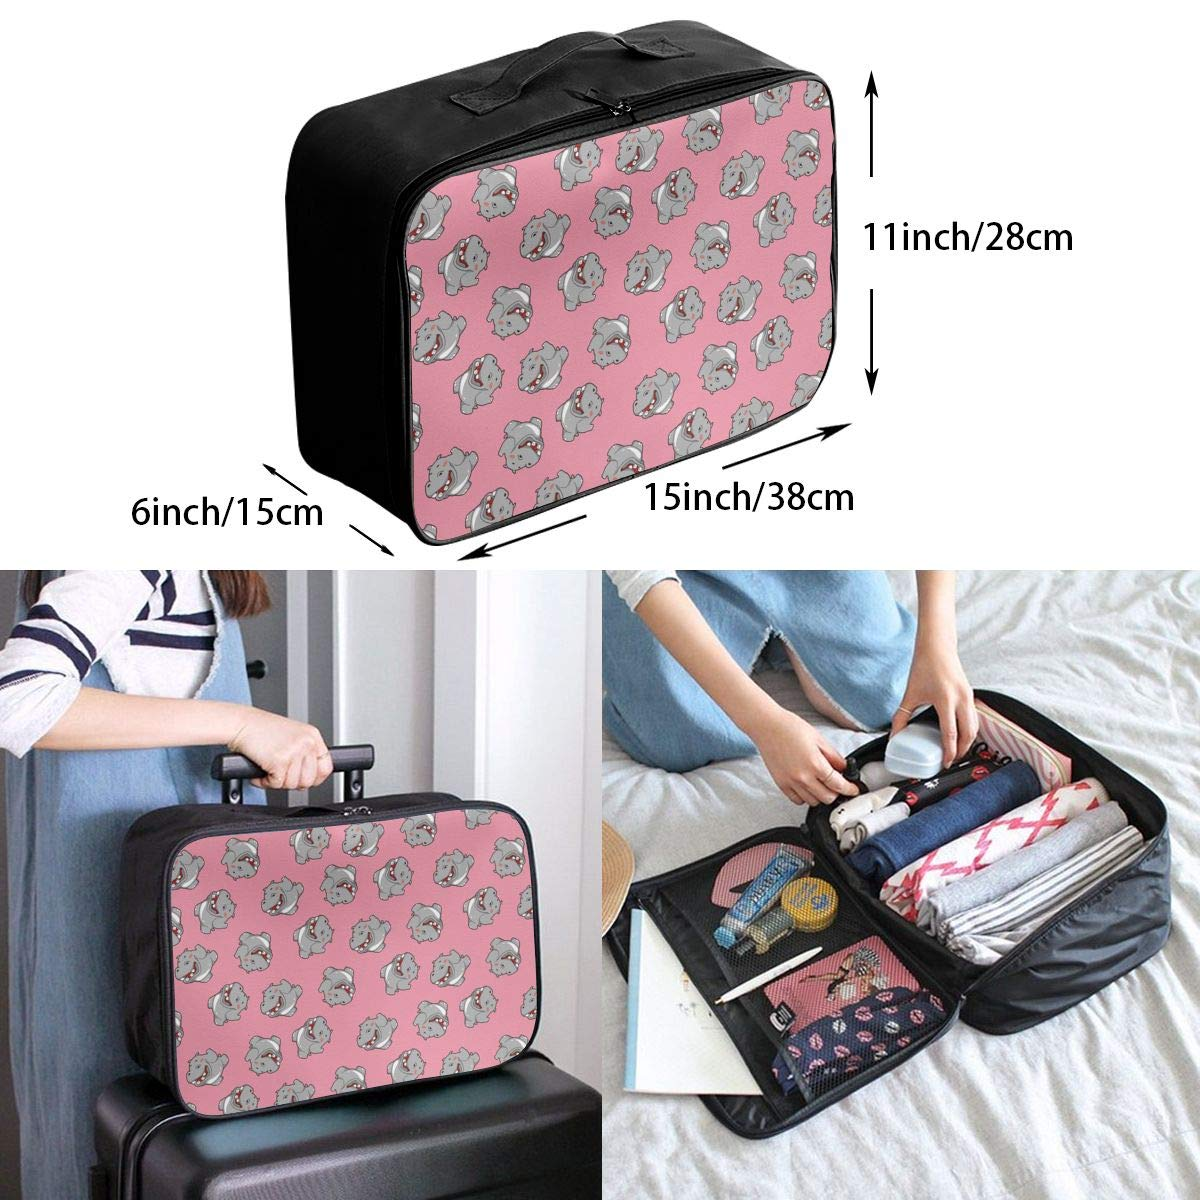 YueLJB Cute Hippo Pattern Lightweight Large Capacity Portable Luggage Bag Travel Duffel Bag Storage Carry Luggage Duffle Tote Bag